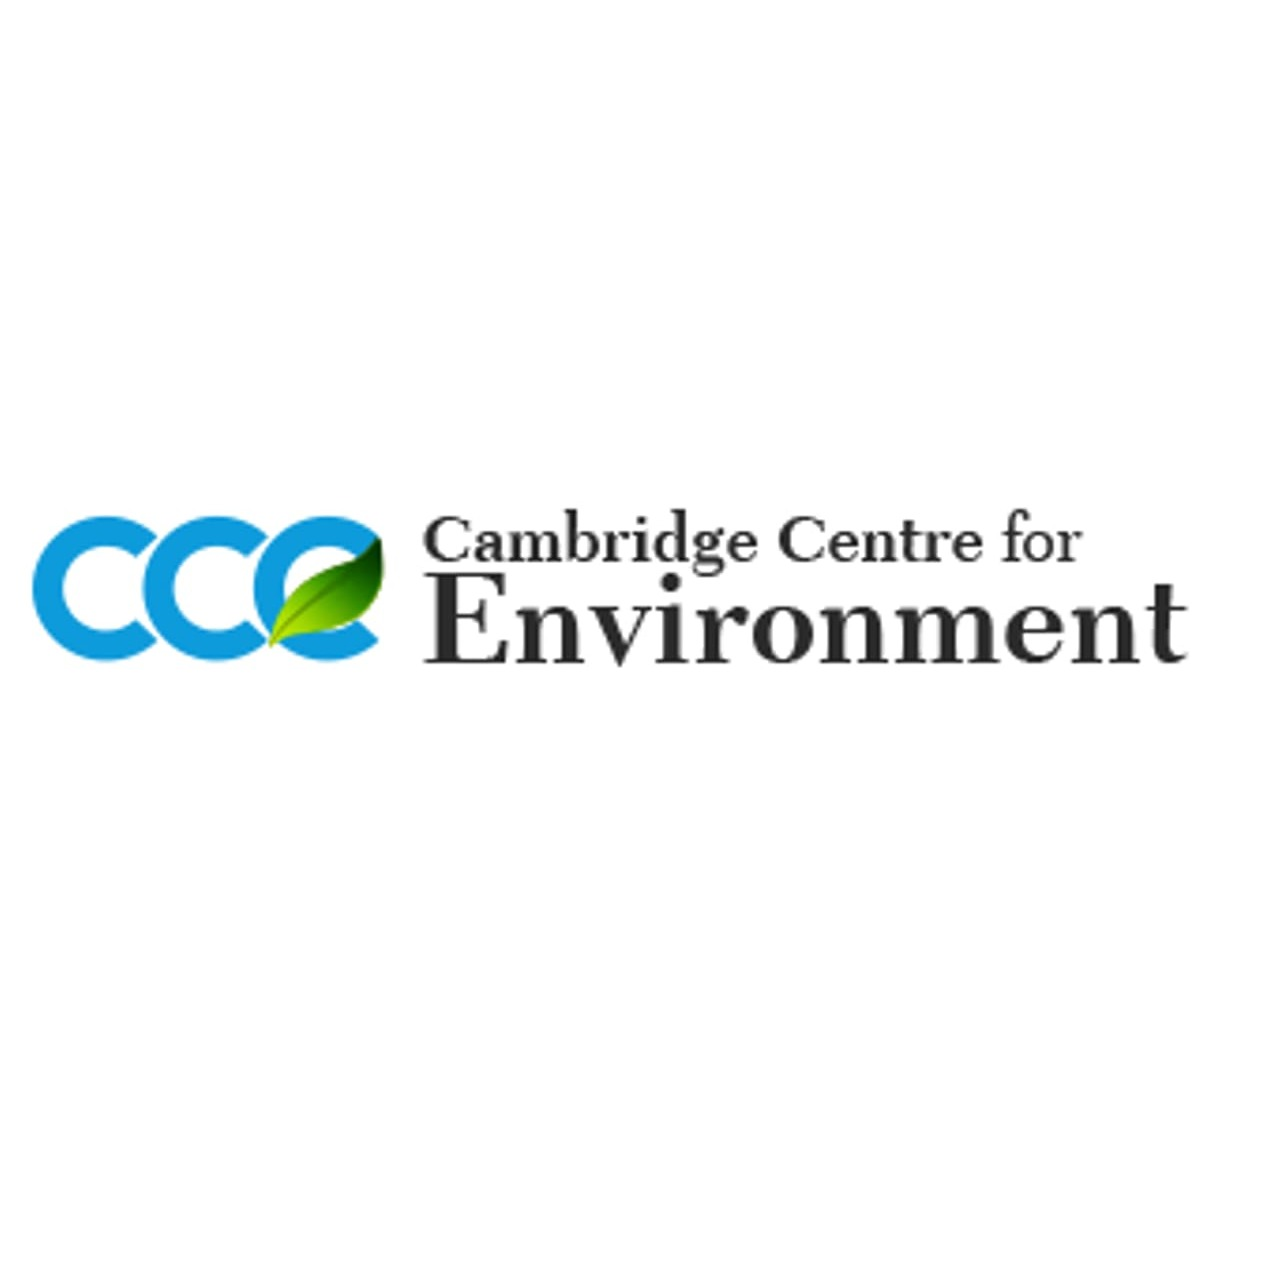 Cambridge Centre for Environment Ltd